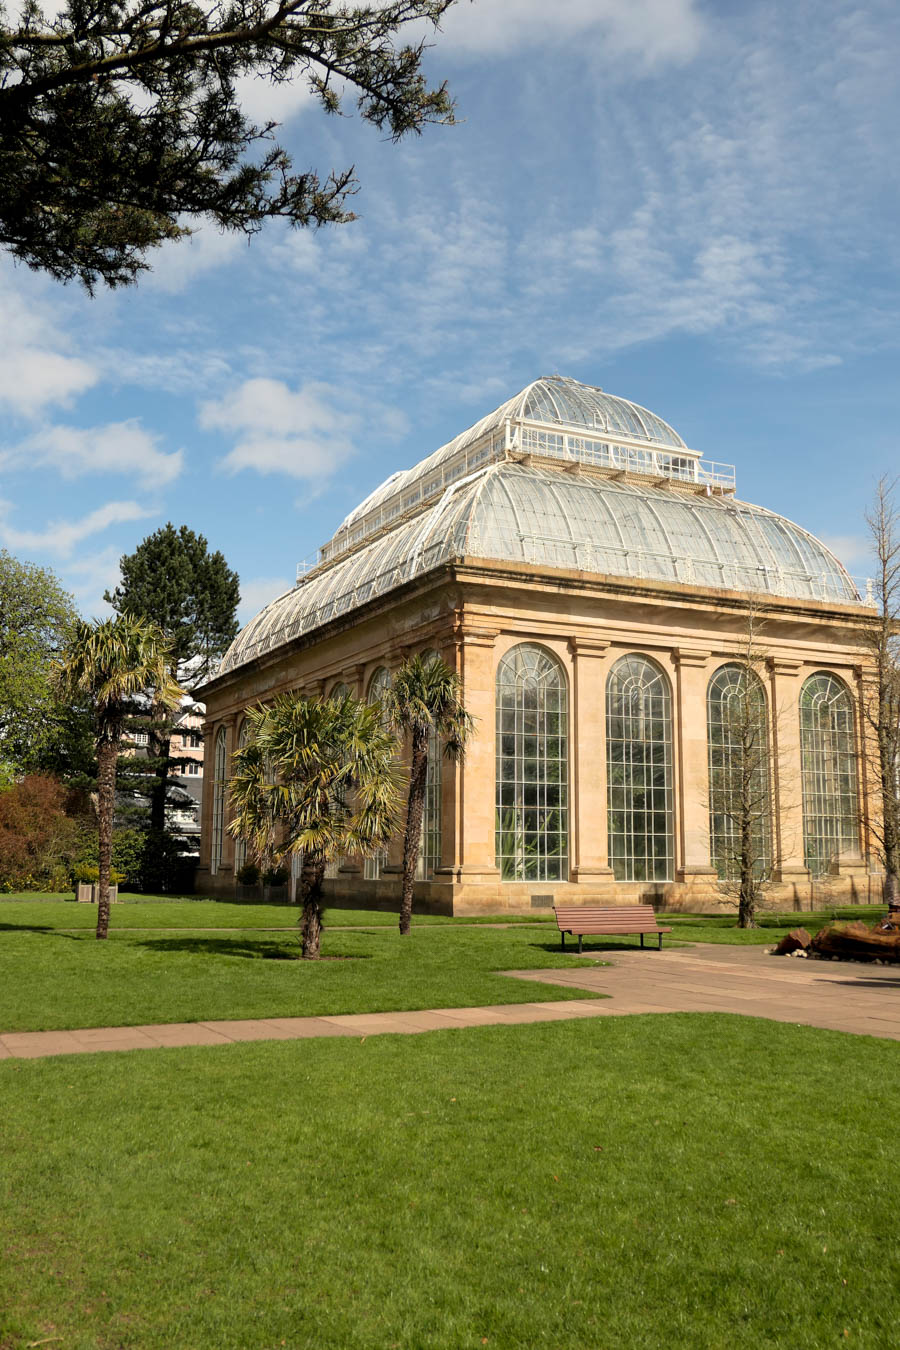 Stockbridge Edinburgh Restaurants Travel Guide - Edinburgh Botanical Gardens